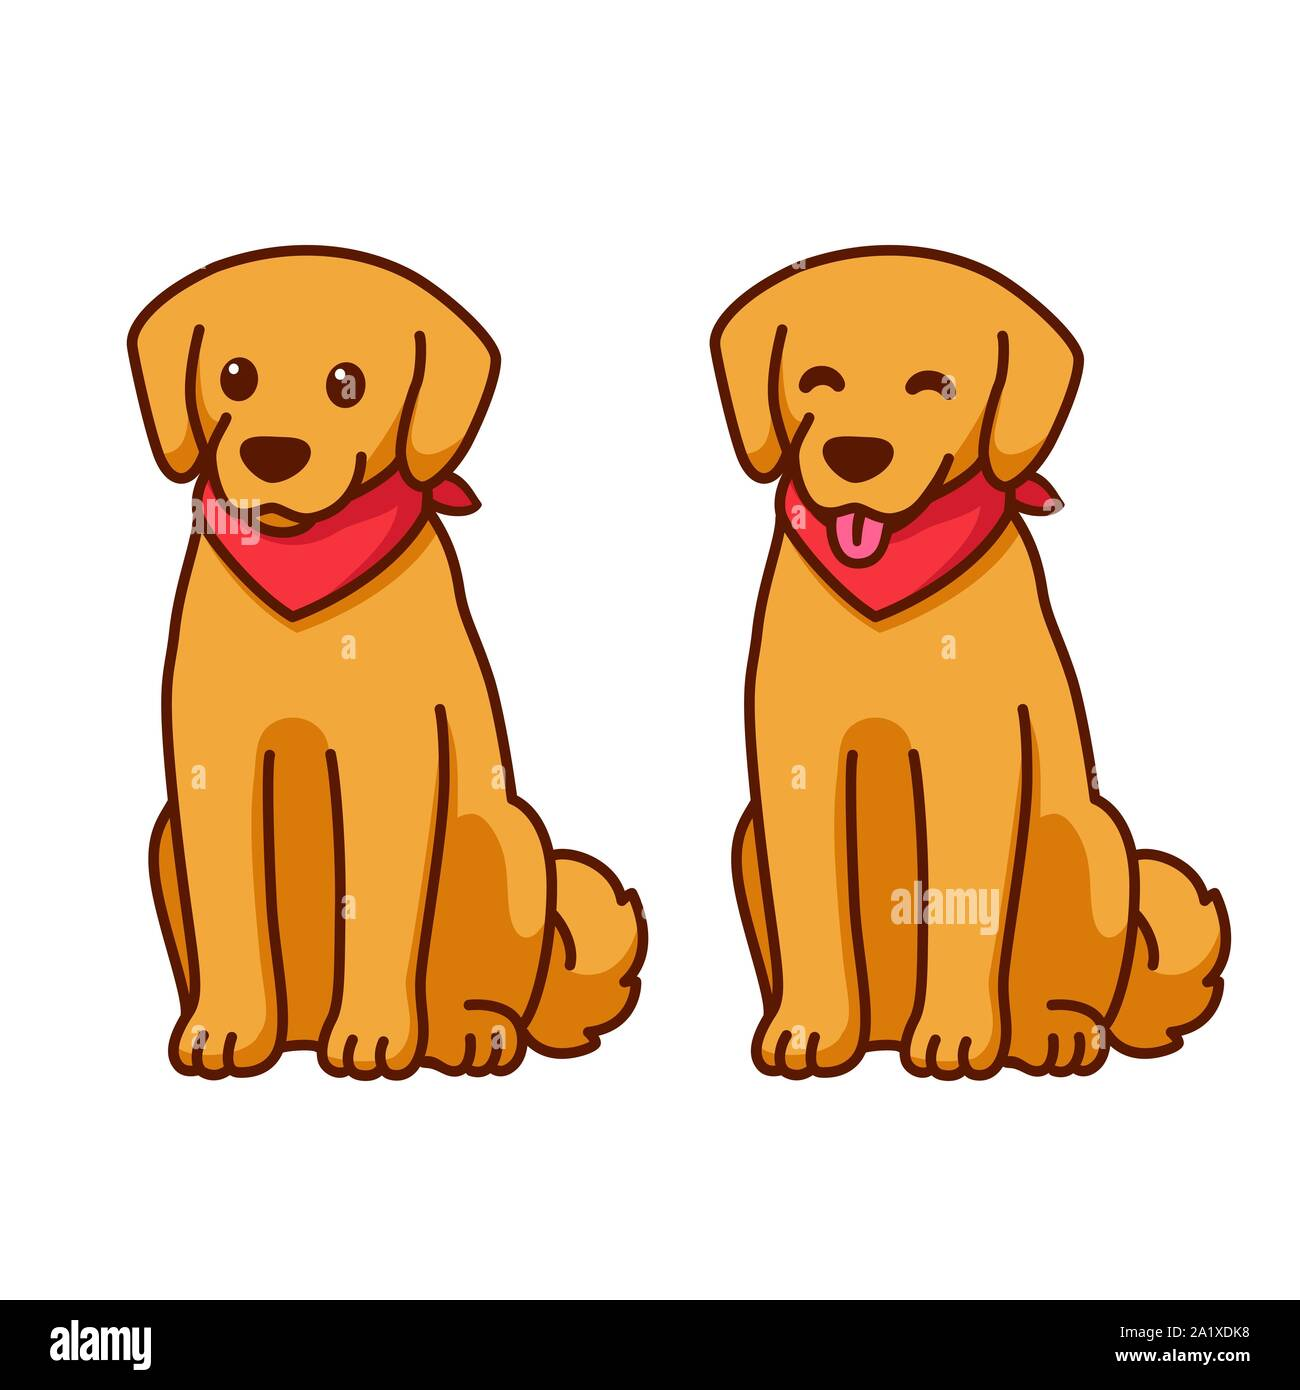 Cartoon Golden Retriever Drawing With Red Bandana Friendly Dog Sitting With Tongue Out Cute Pet Labrador Vector Illustration Stock Vector Image Art Alamy